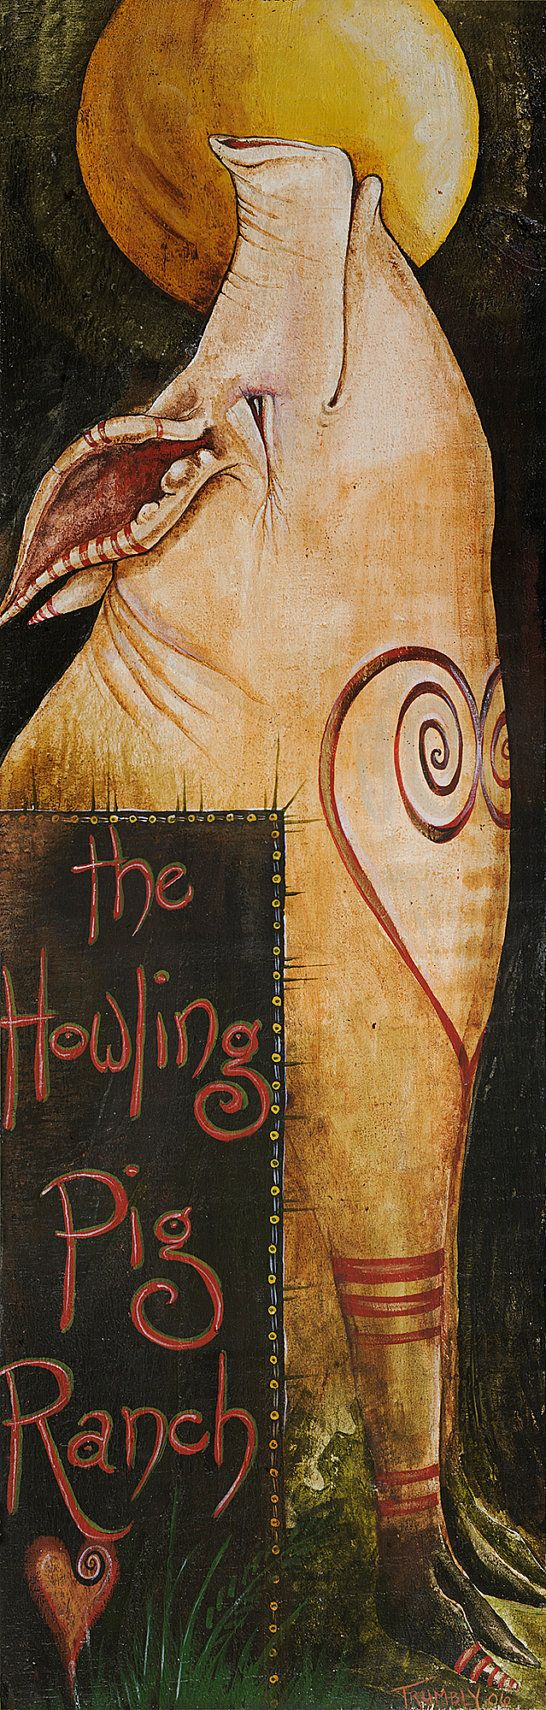 the Howling Pig Ranch 12 x 18 eco paper art print by ShannaTrumbly, $20.00